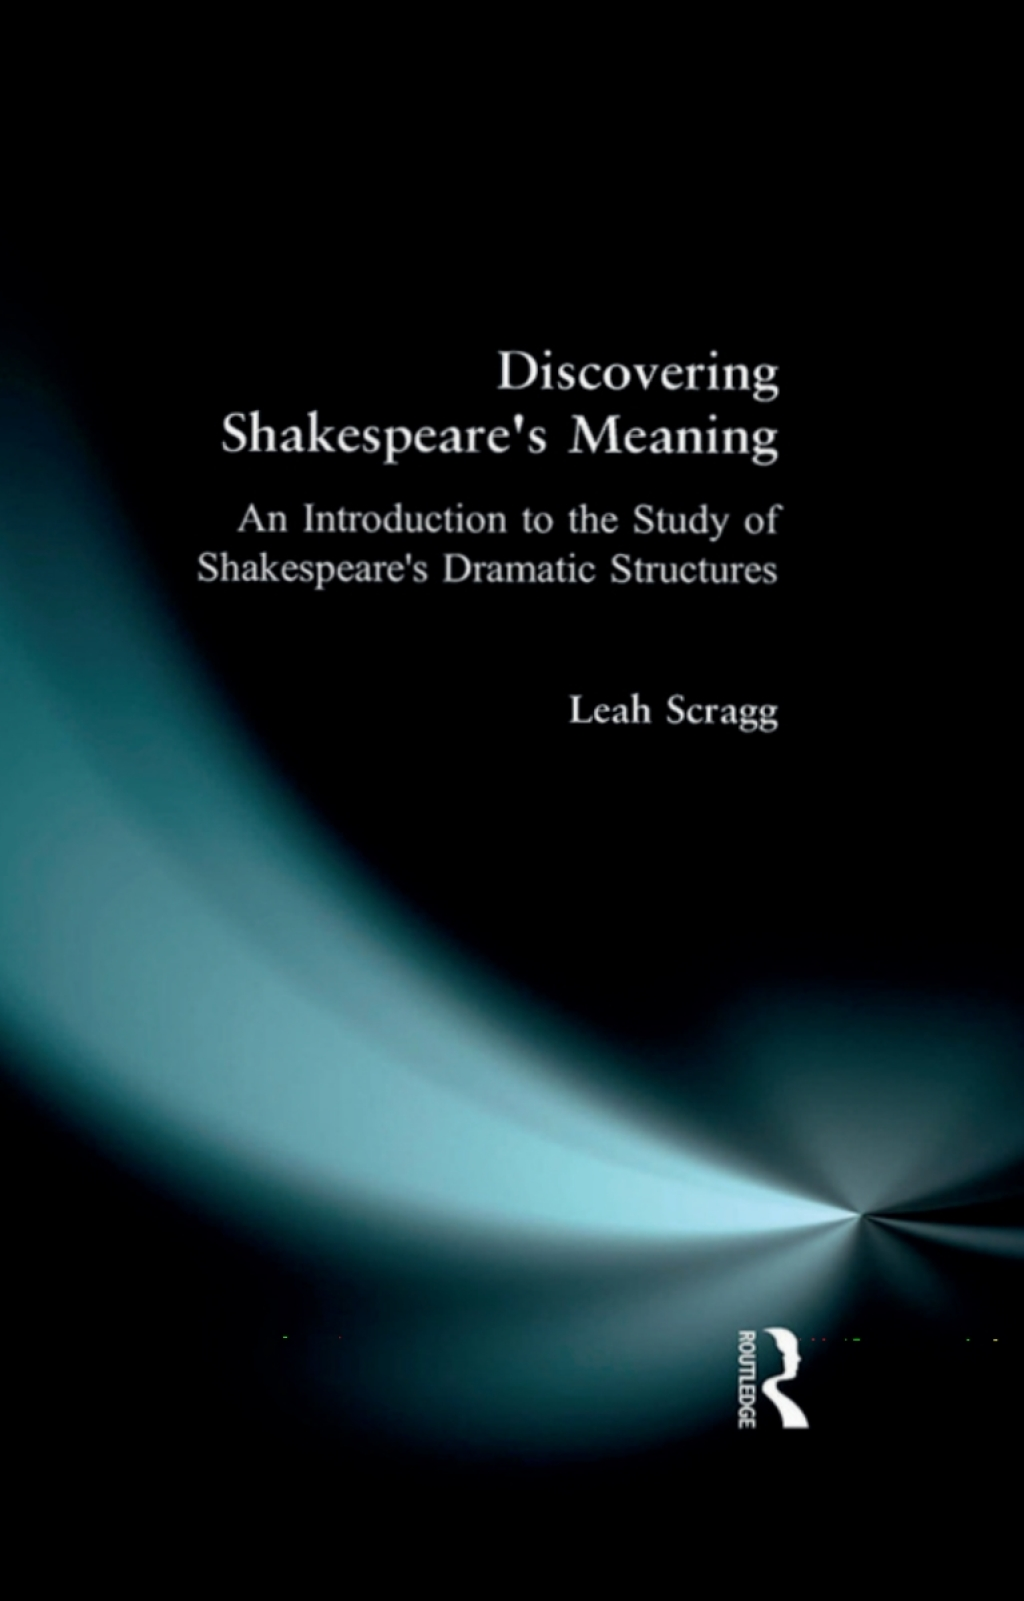 Discovering Shakespeare's Meaning (eBook)